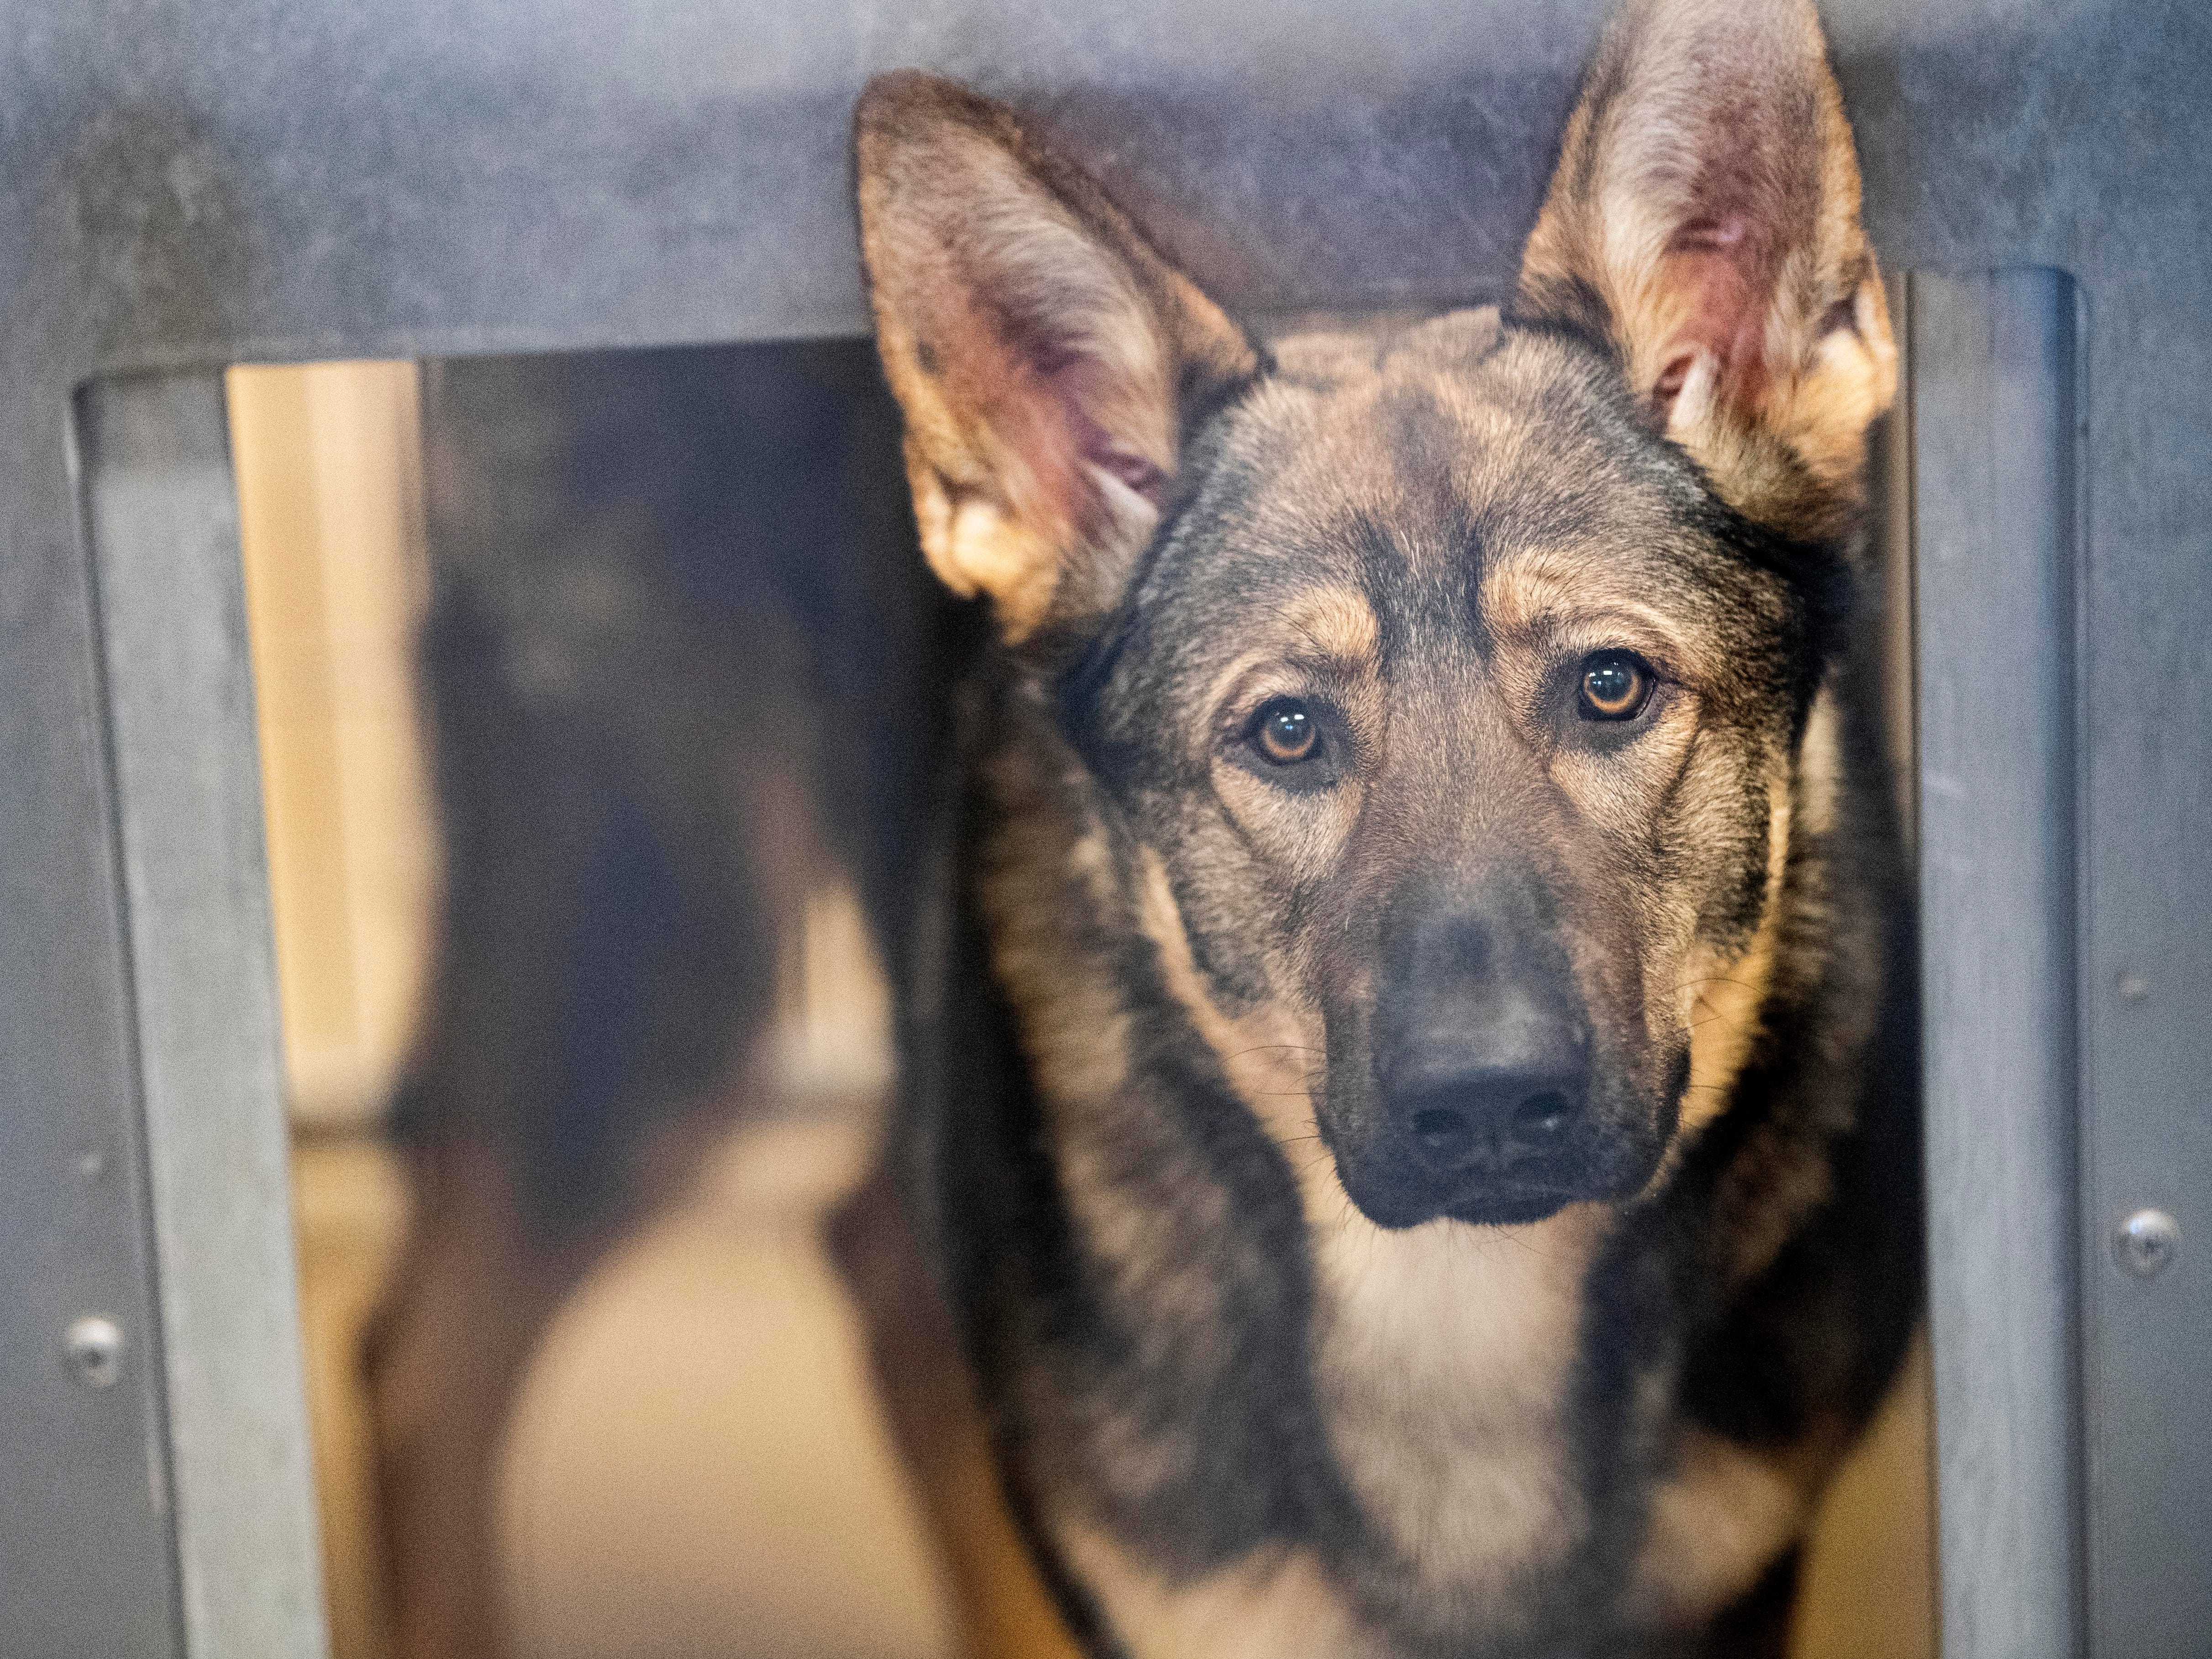 Archie, a 1-year old German Shepard, was brought to the shelter because his owner was unable to care for him.